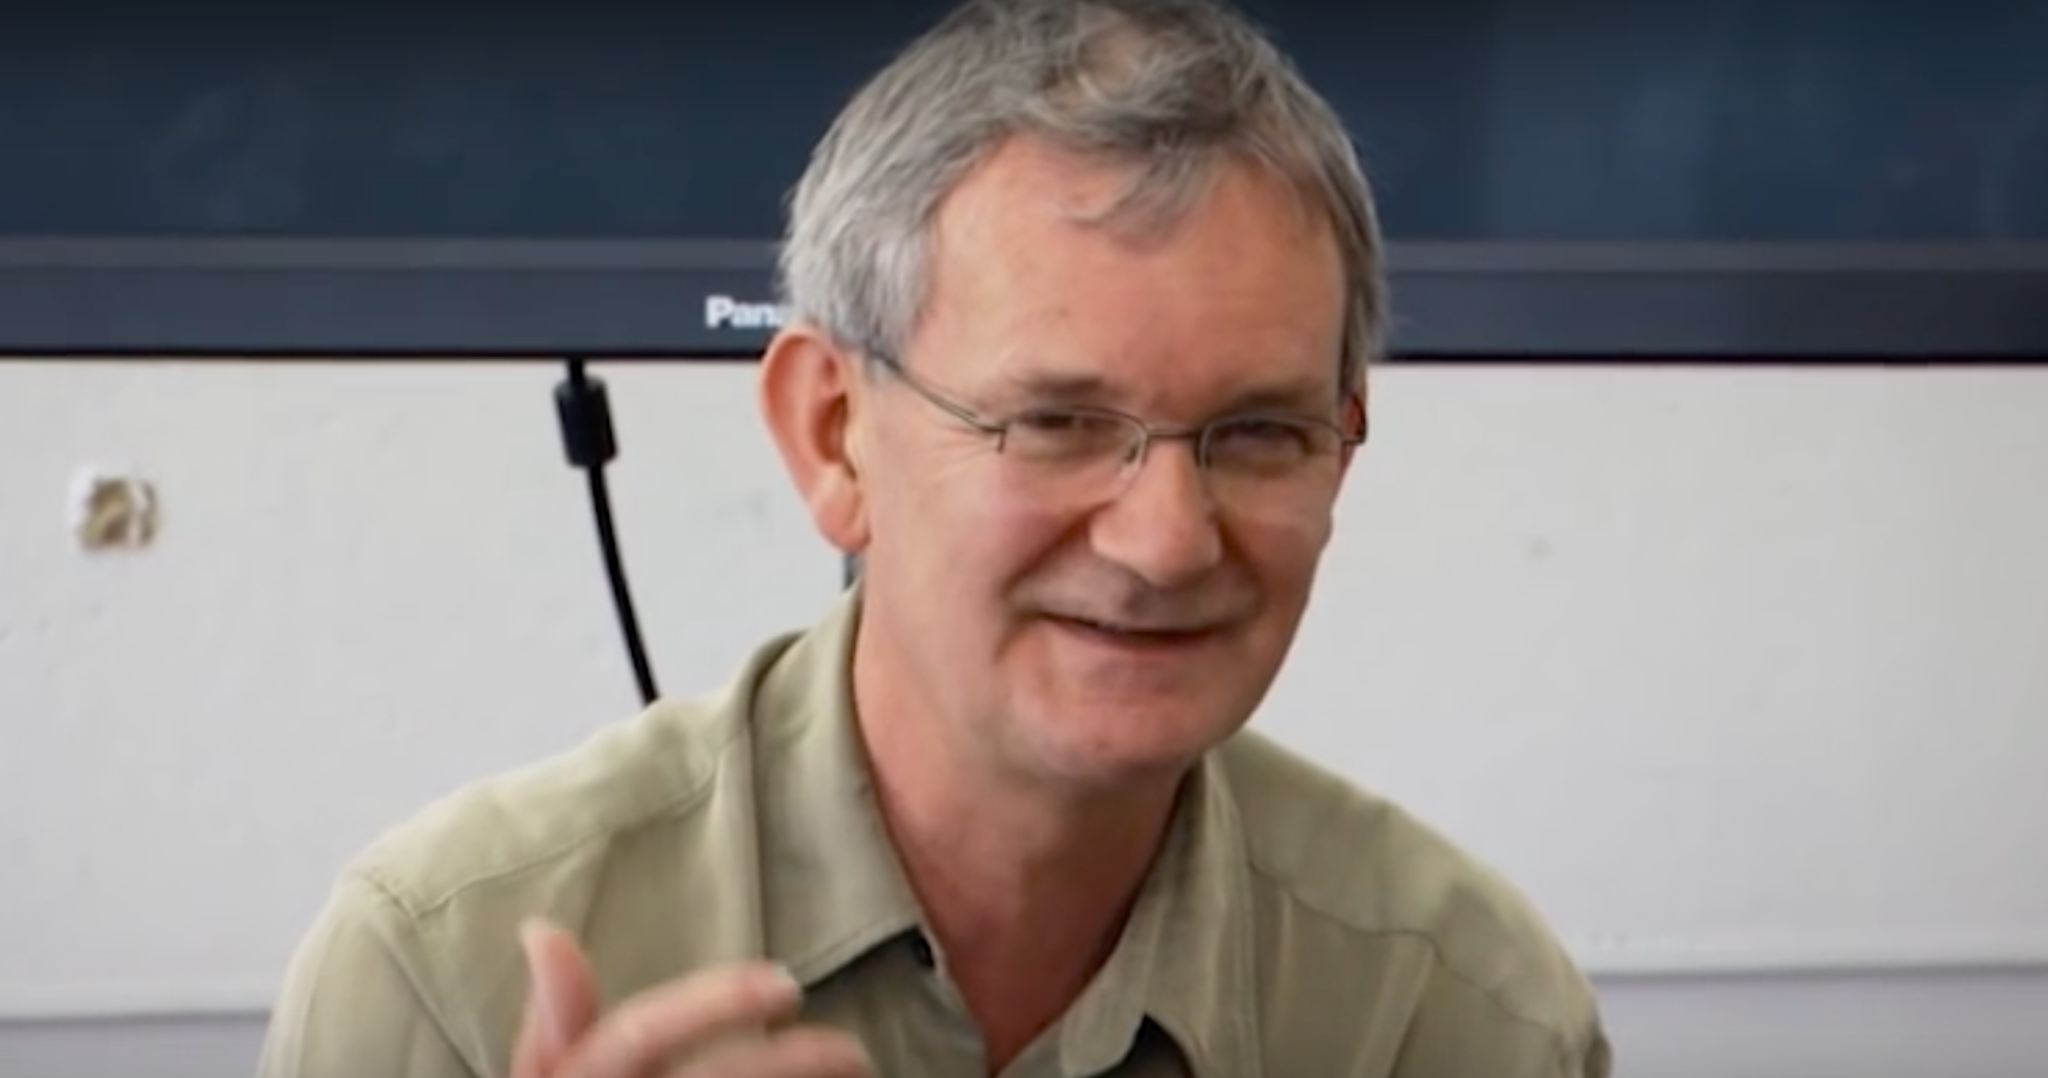 Magnum Photographer Martin Parr Offers Young Photographers Great Advice